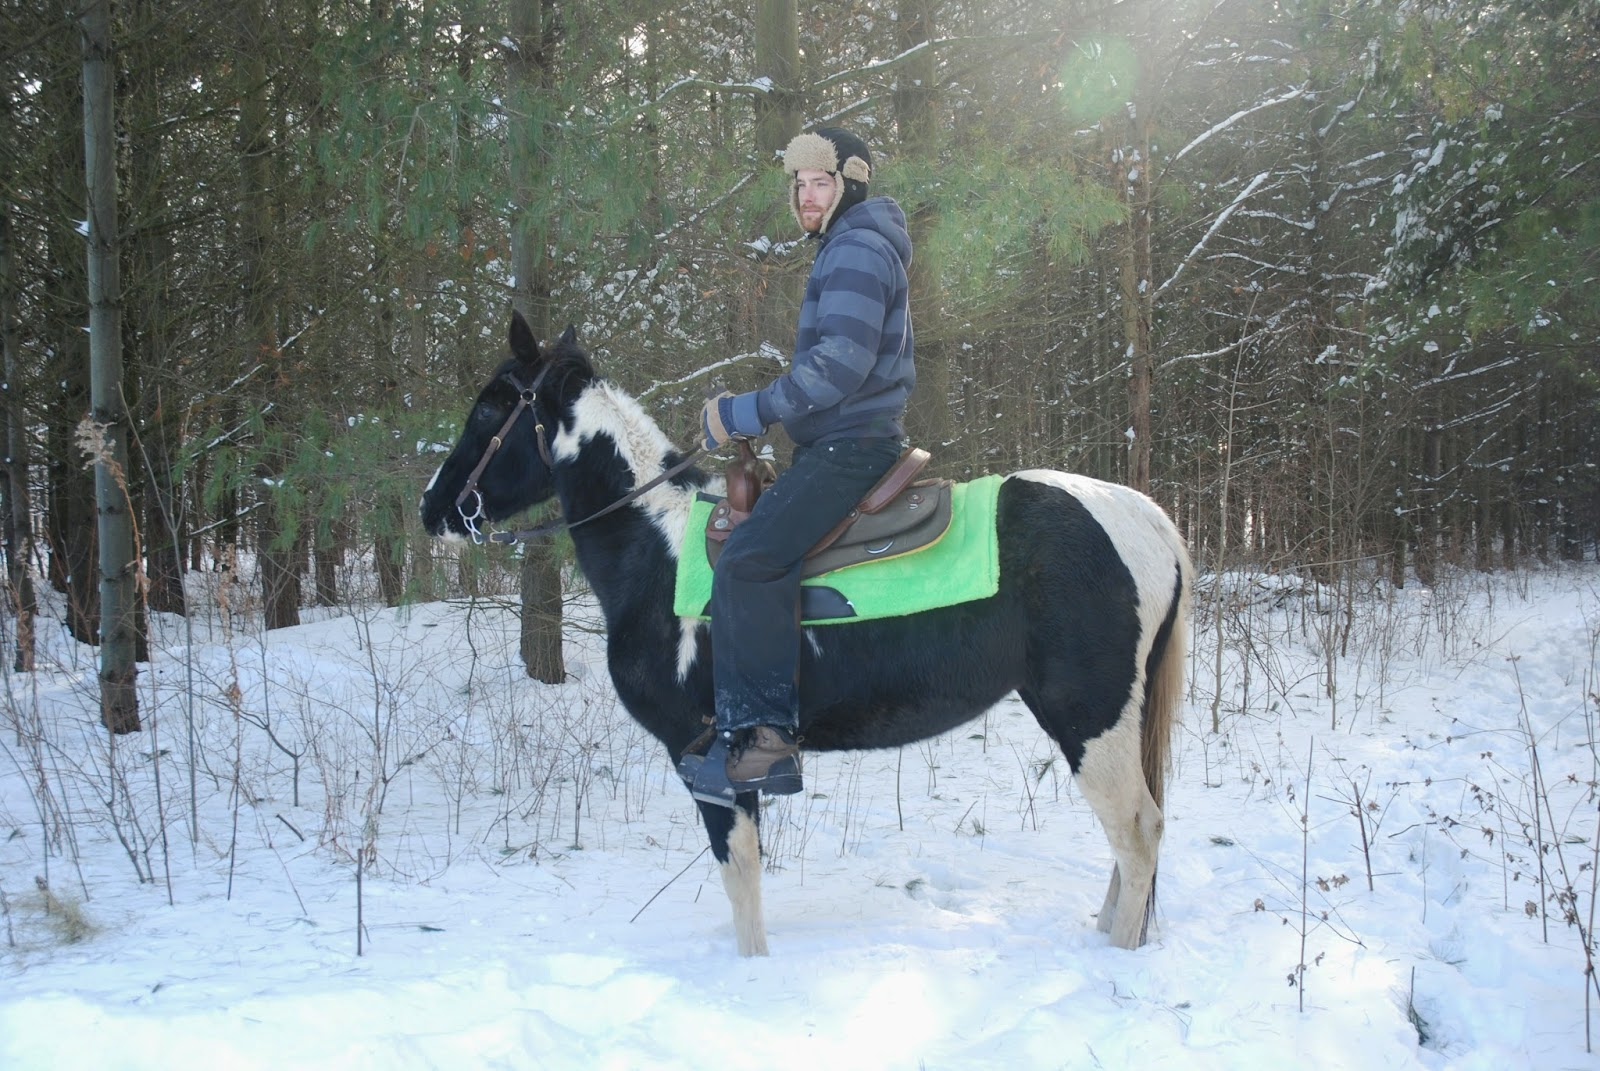 Canadian Trail Horses For Sale - Tennessee Walking Horses Spotted Saddle Horses - Safe for Beginner Riders, Timid Riders & Children - Glen Huron, Ontario, Canada - Also advertised in Toronto on Horsetopia, Horseville, EquineHits, EquineConnection, Kijiji, horseweb, horseclicks, myhorses, trail horses ontario, trail horses canada, trail horses for sale, elite equine, knox equine, canadian trail horses, , horse training buysell, horsesincanada, equinenow and more! Windsor Toronto London